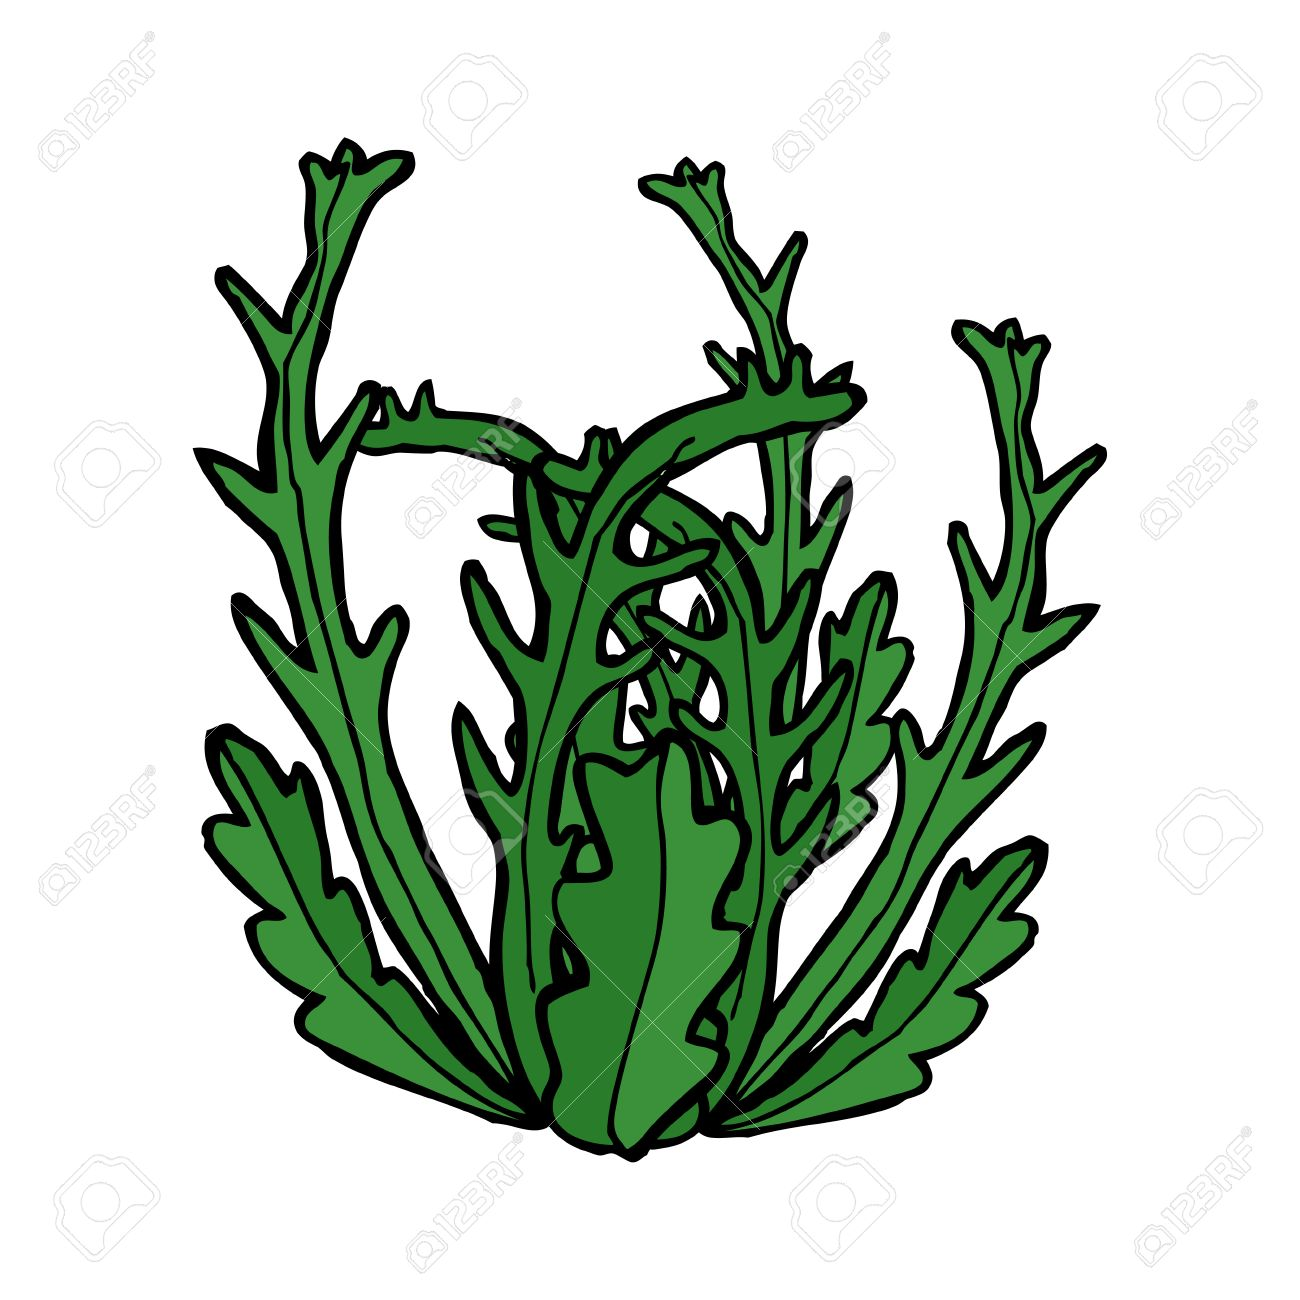 Image result for seaweed